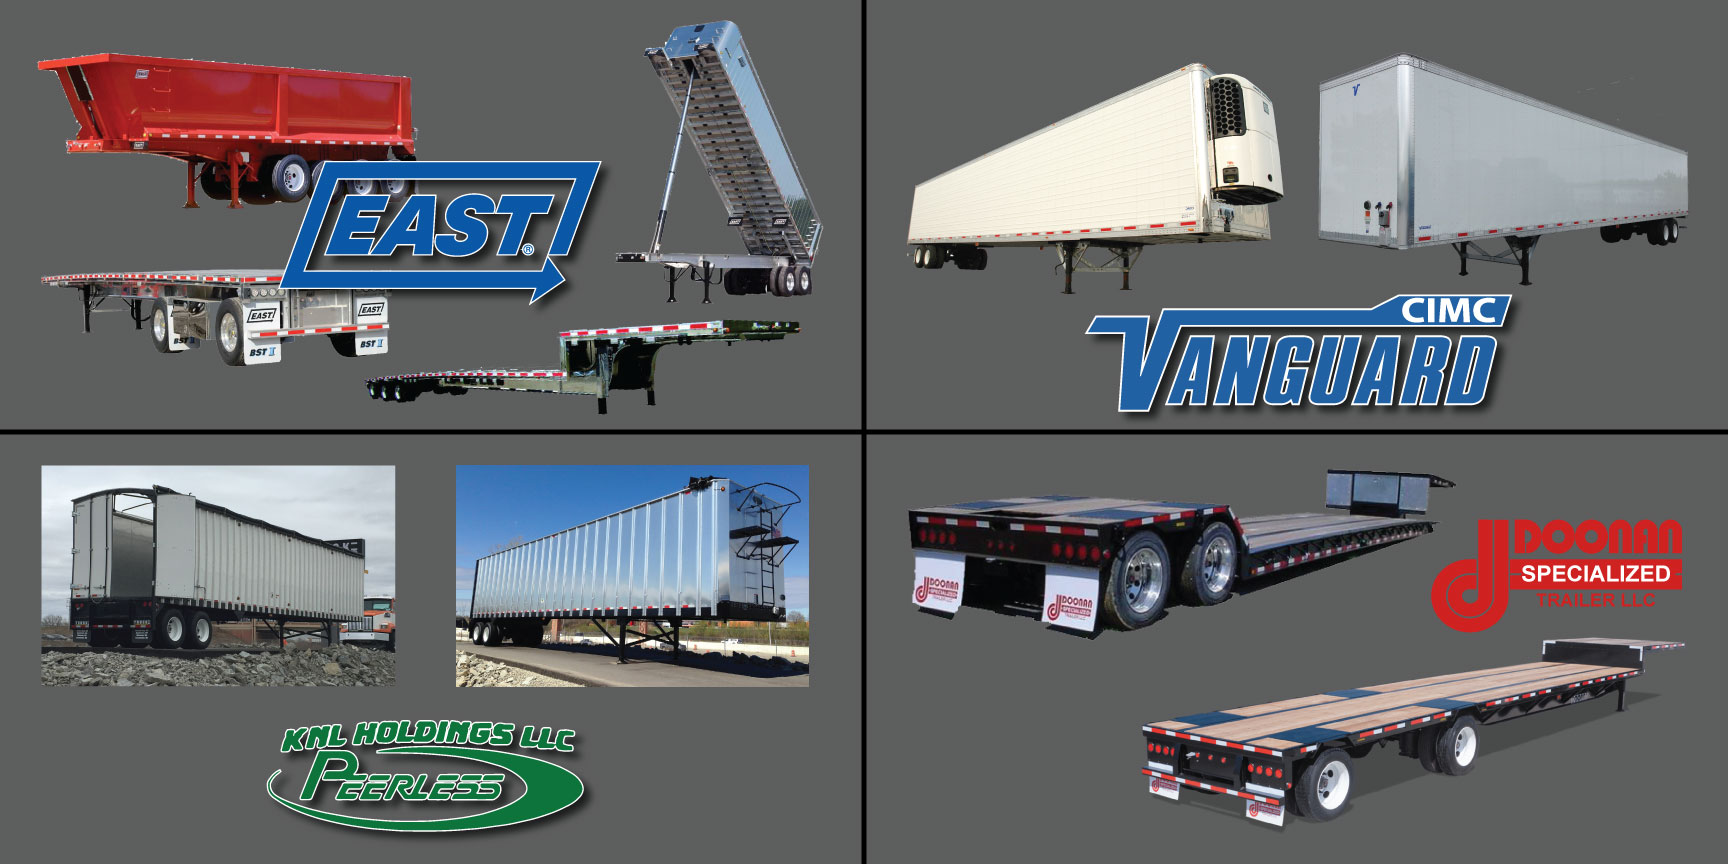 Trailers Truck Equip Inc Quality Trailer Wiring Diagram Strength Durability Value And Innovation All Work Together At East Manufacturing In The Manufacture Of That Take On Some Toughest